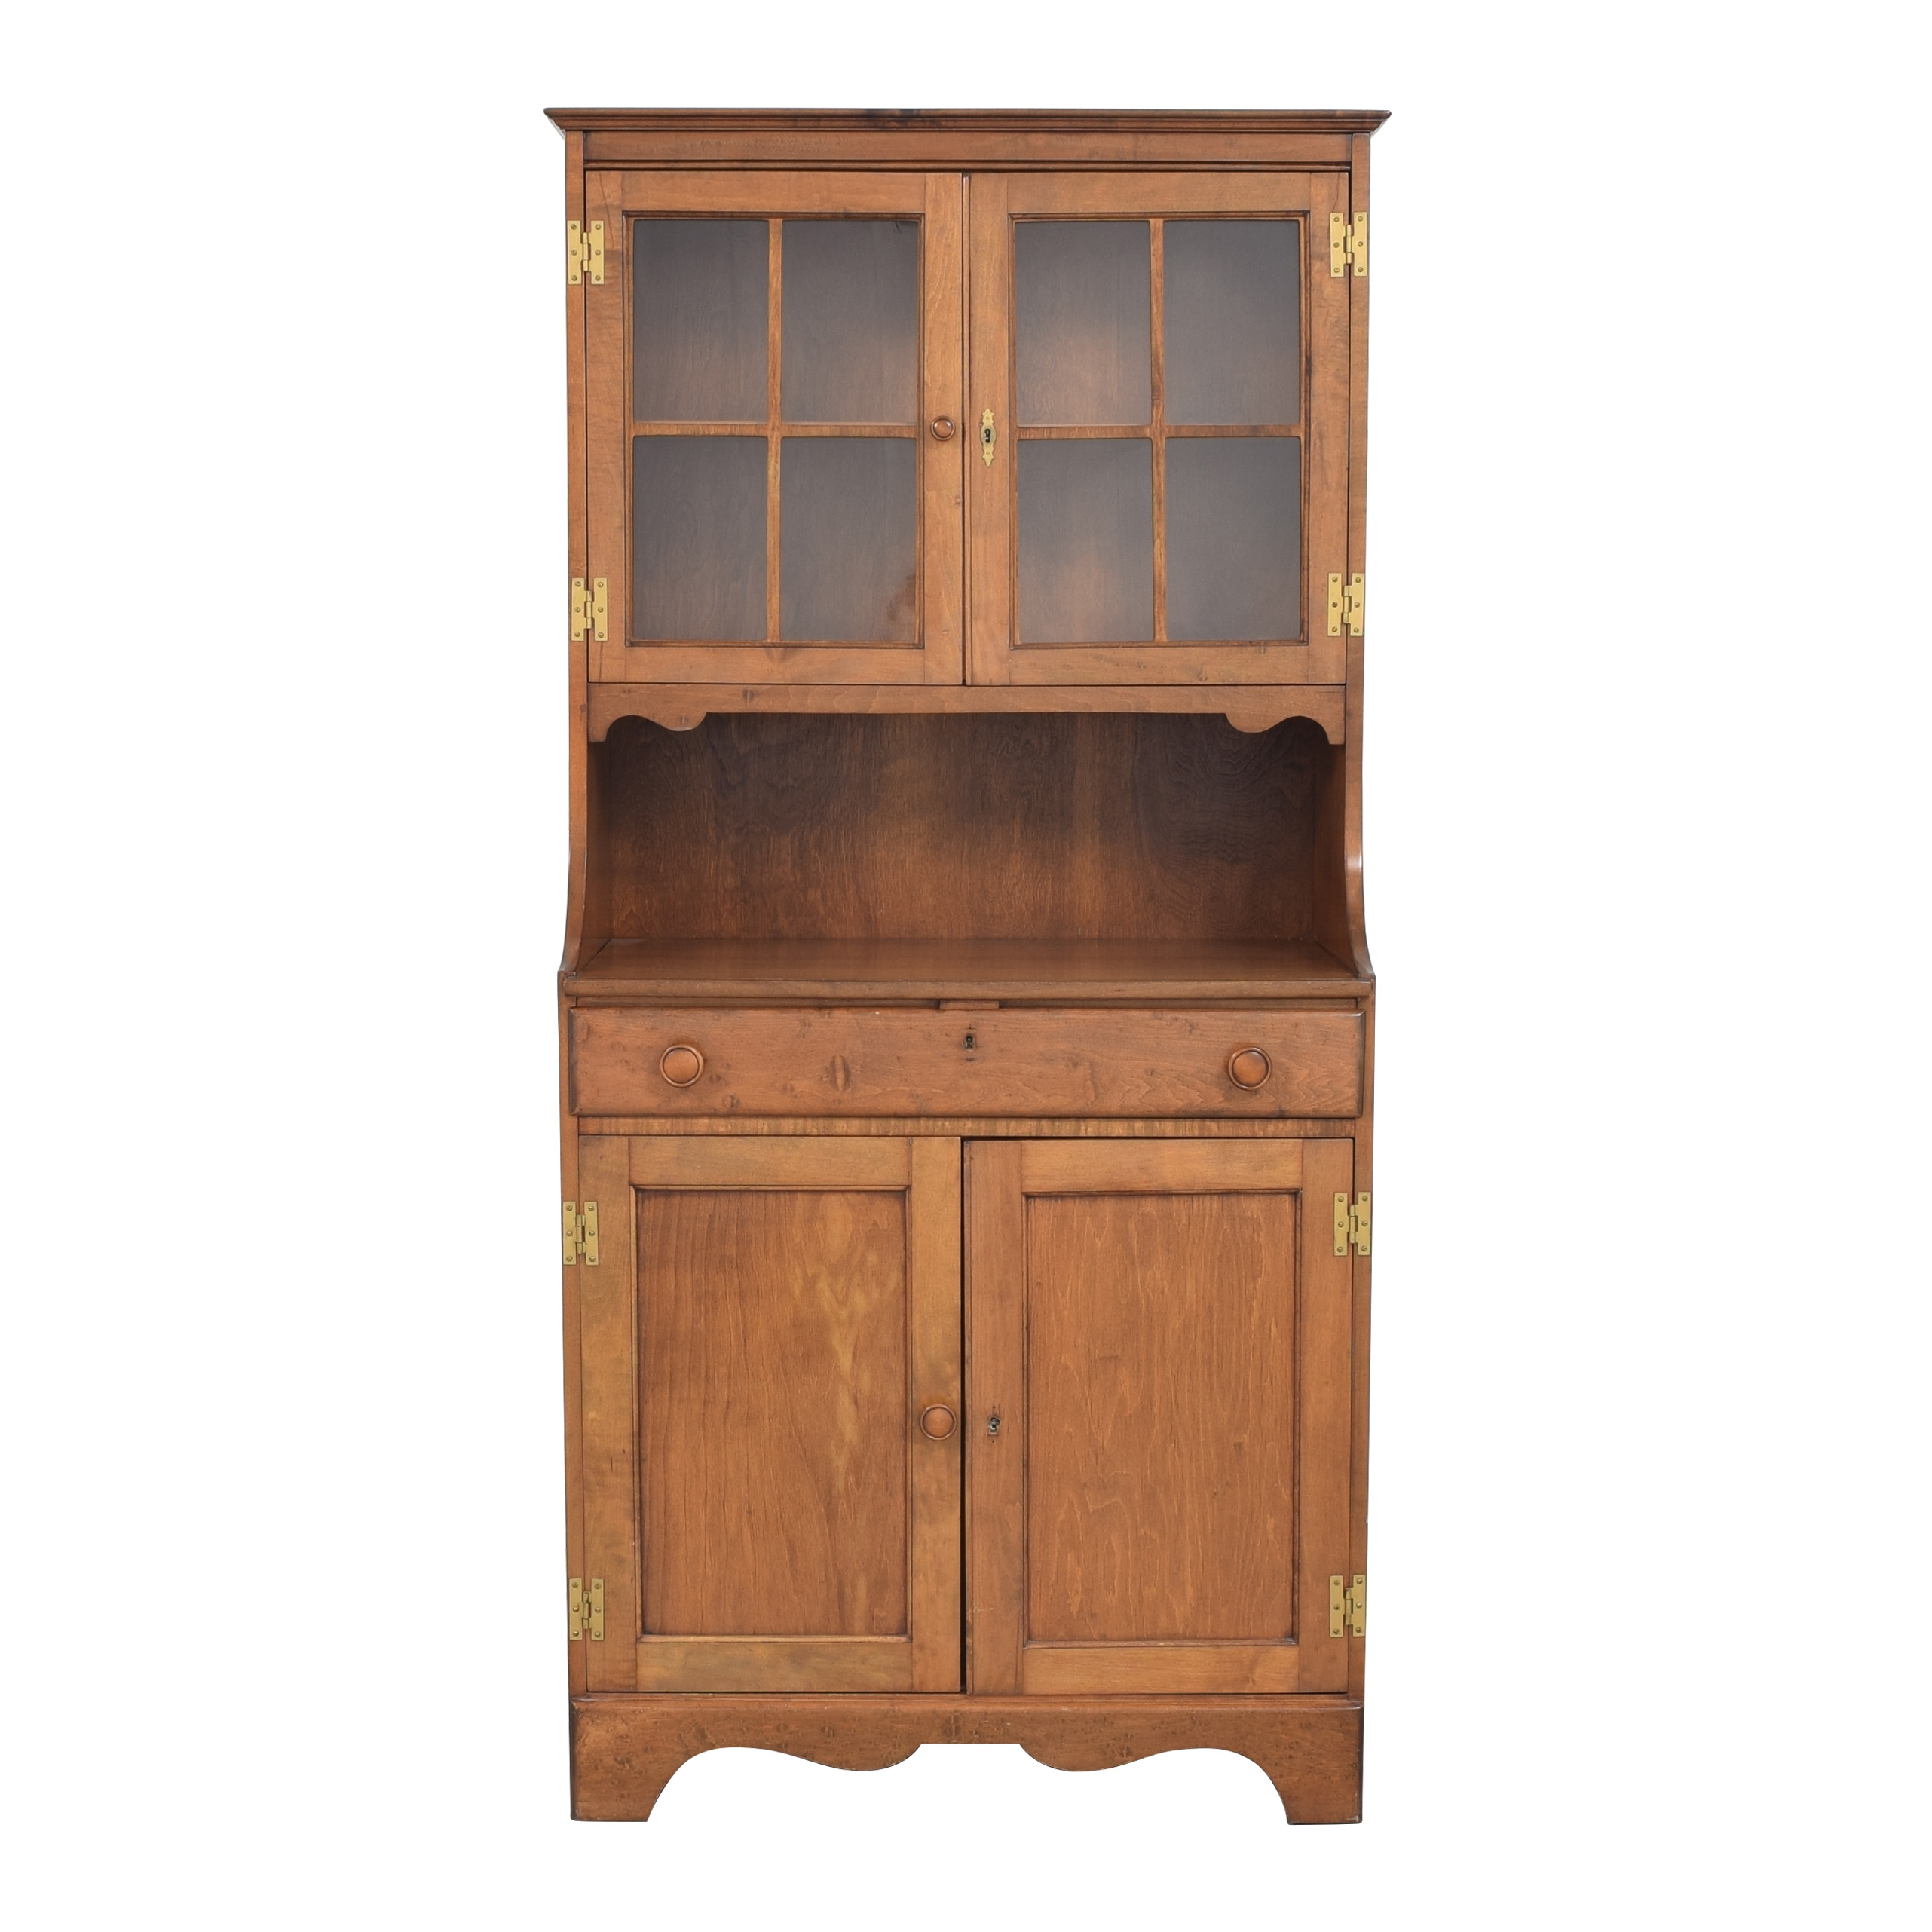 French Country Style Hutch dimensions